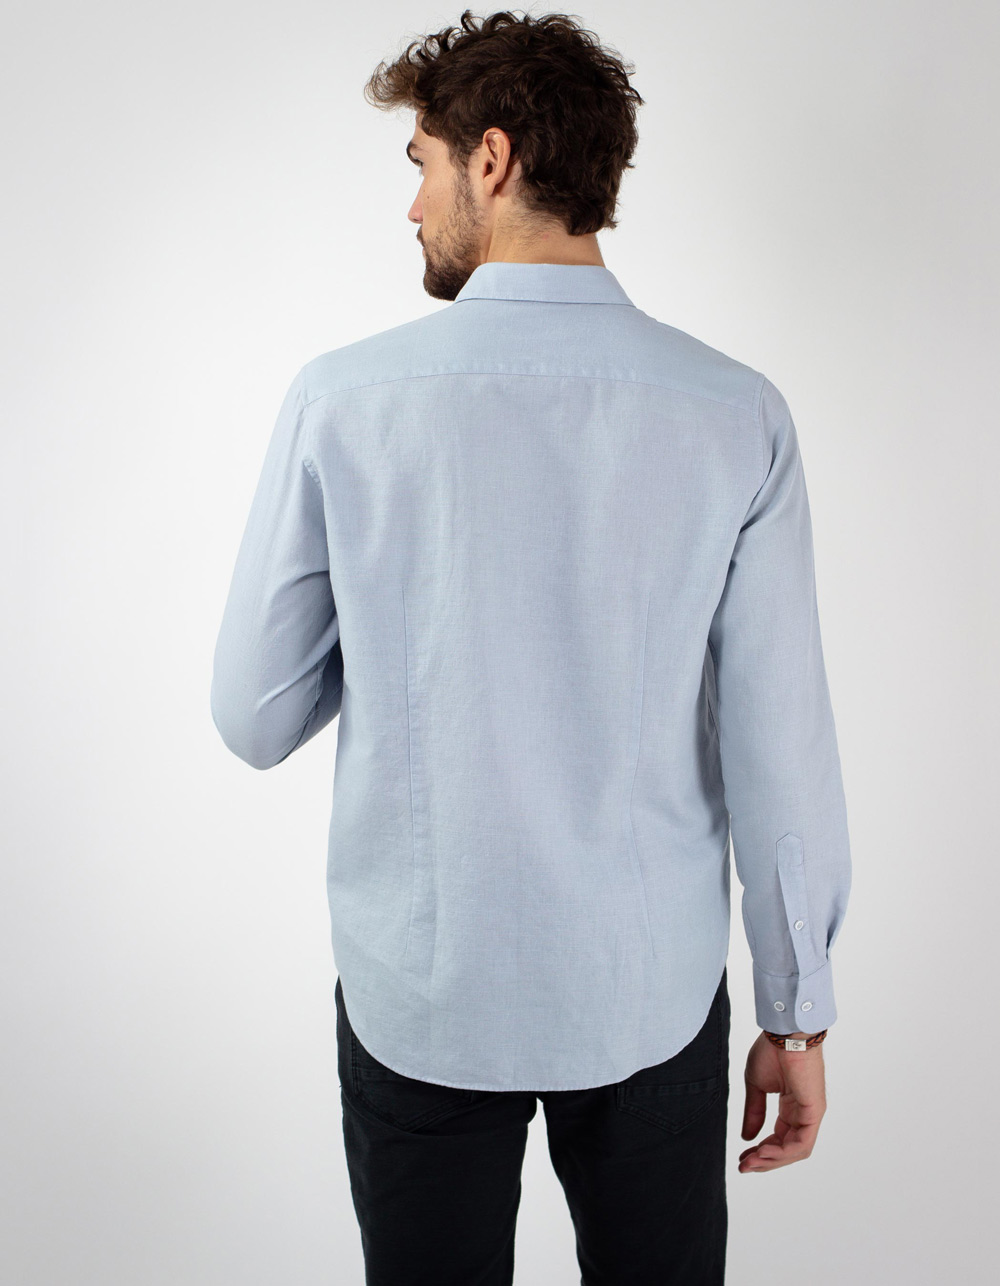 Camisa de lino algodon azul - Backside